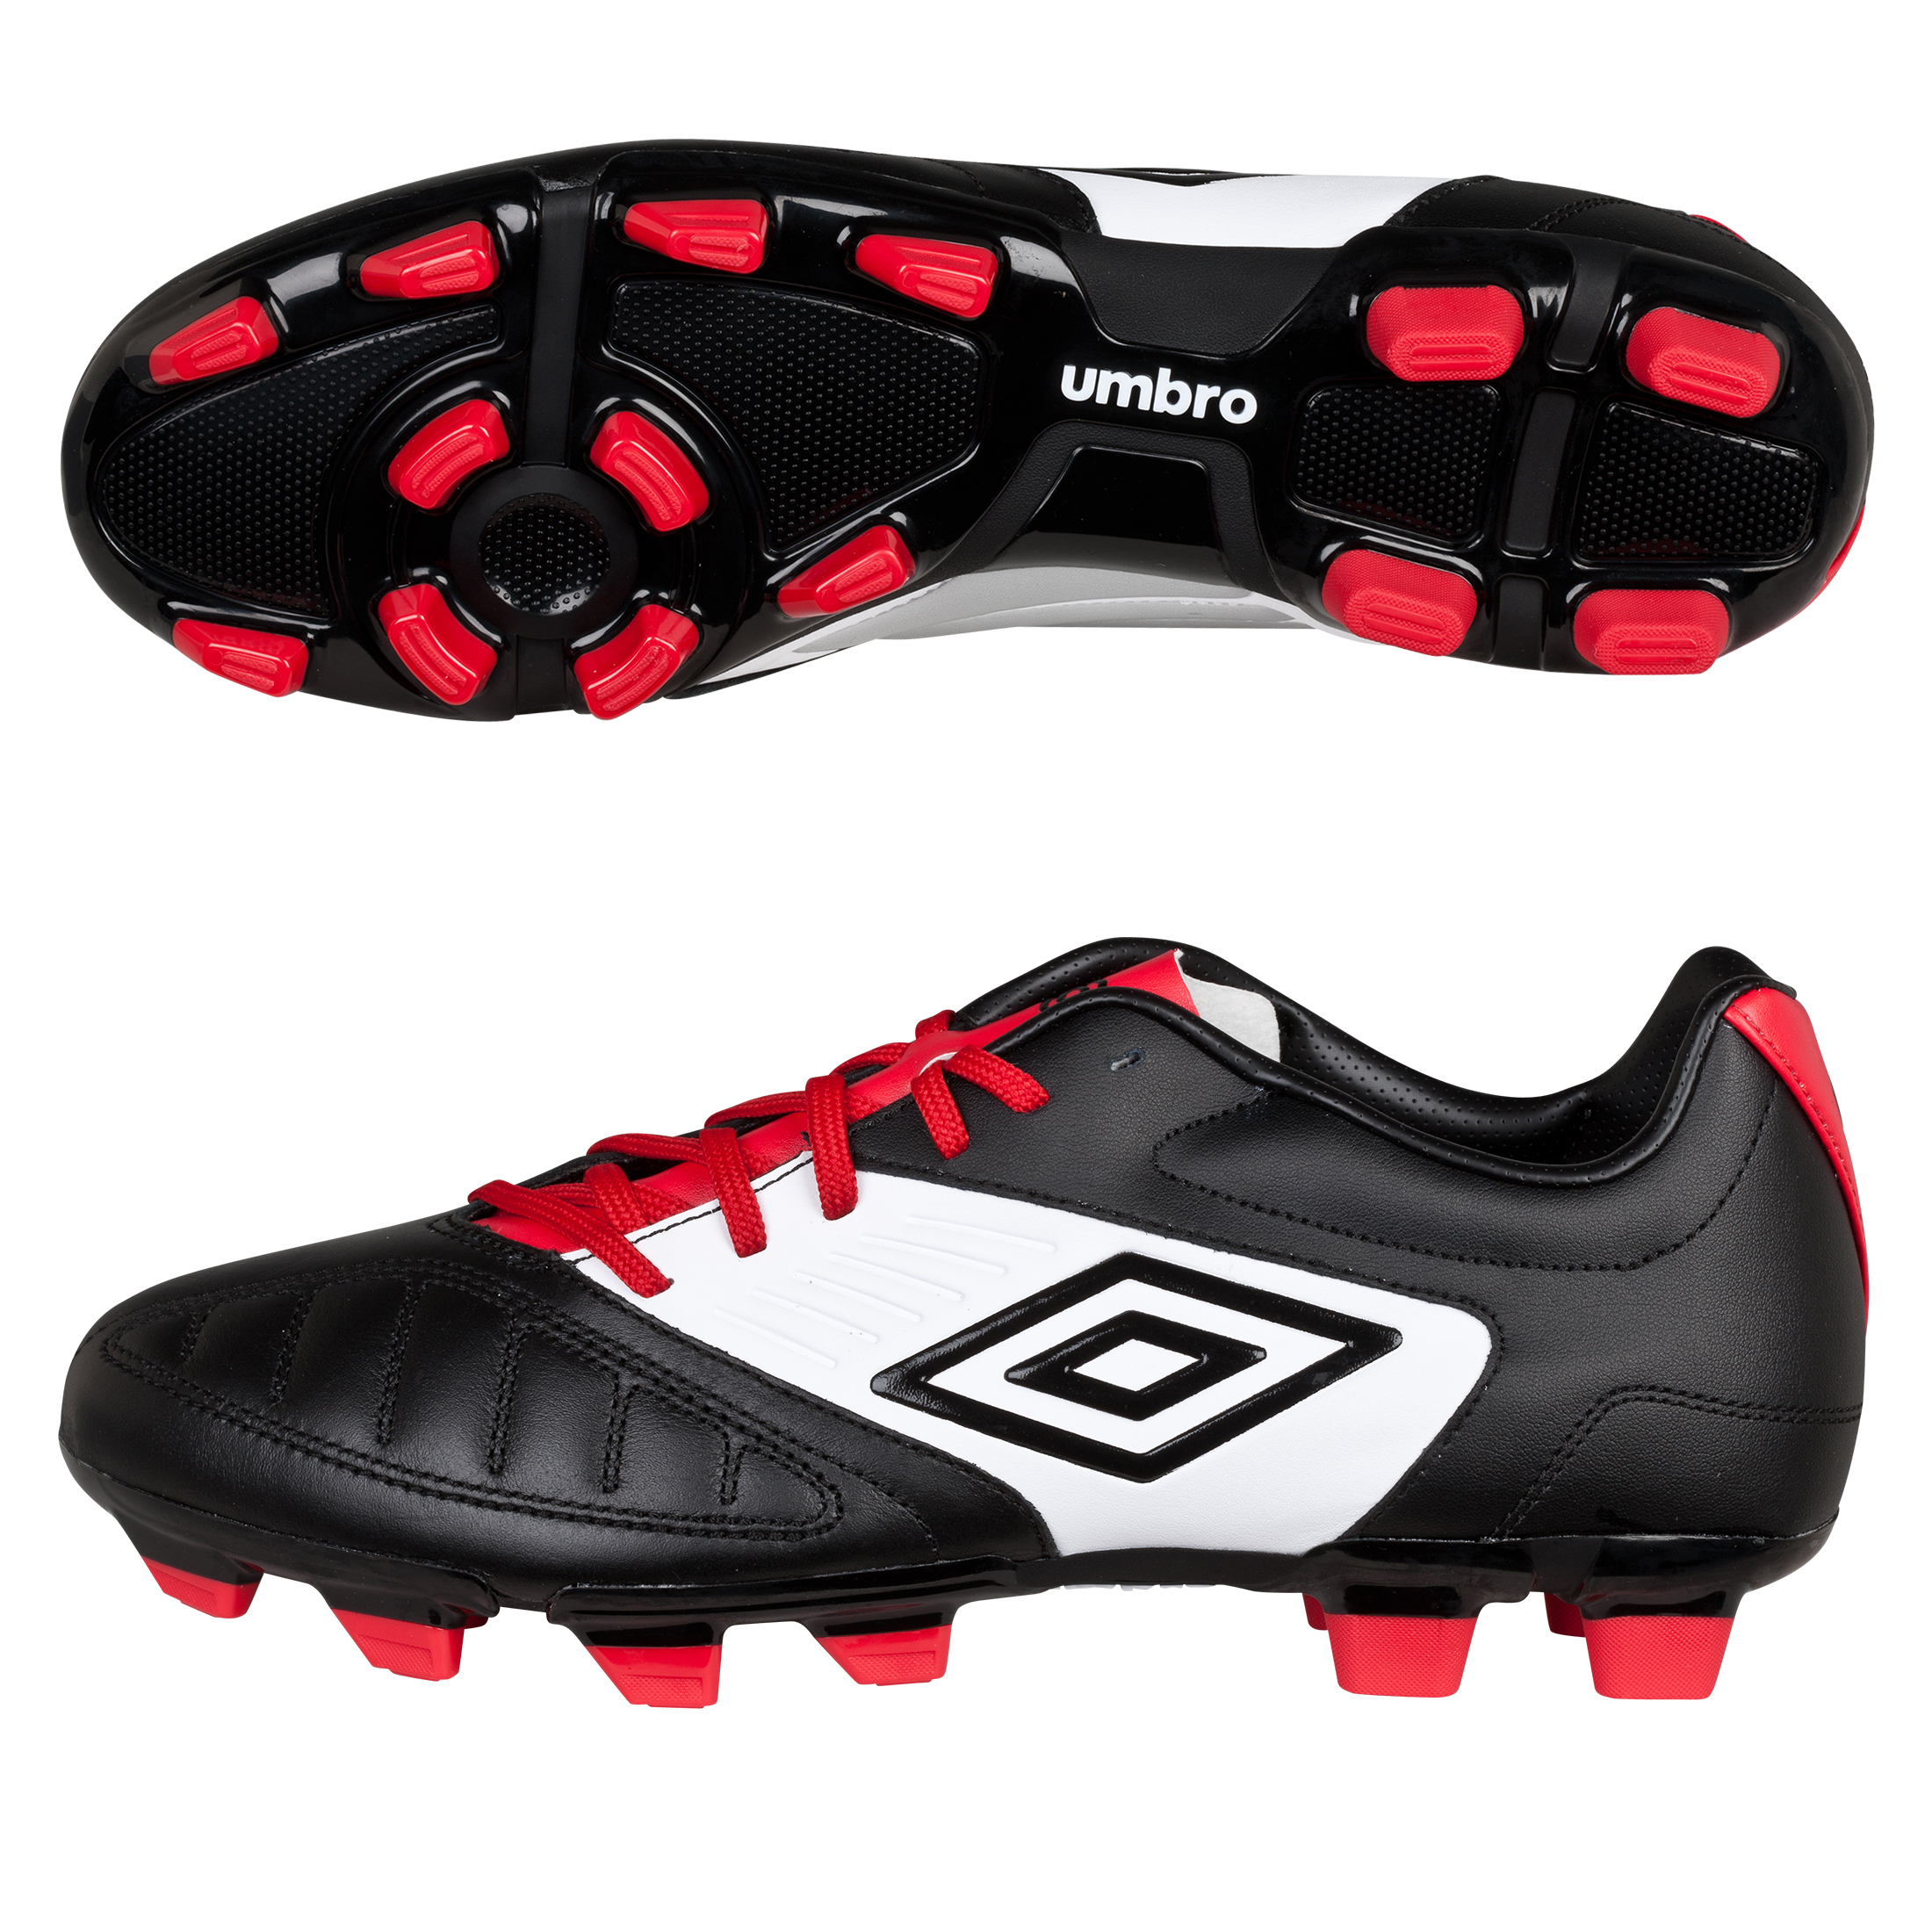 Umbro Geometra Premier Firm Ground Football Boots - Black/White/True Red